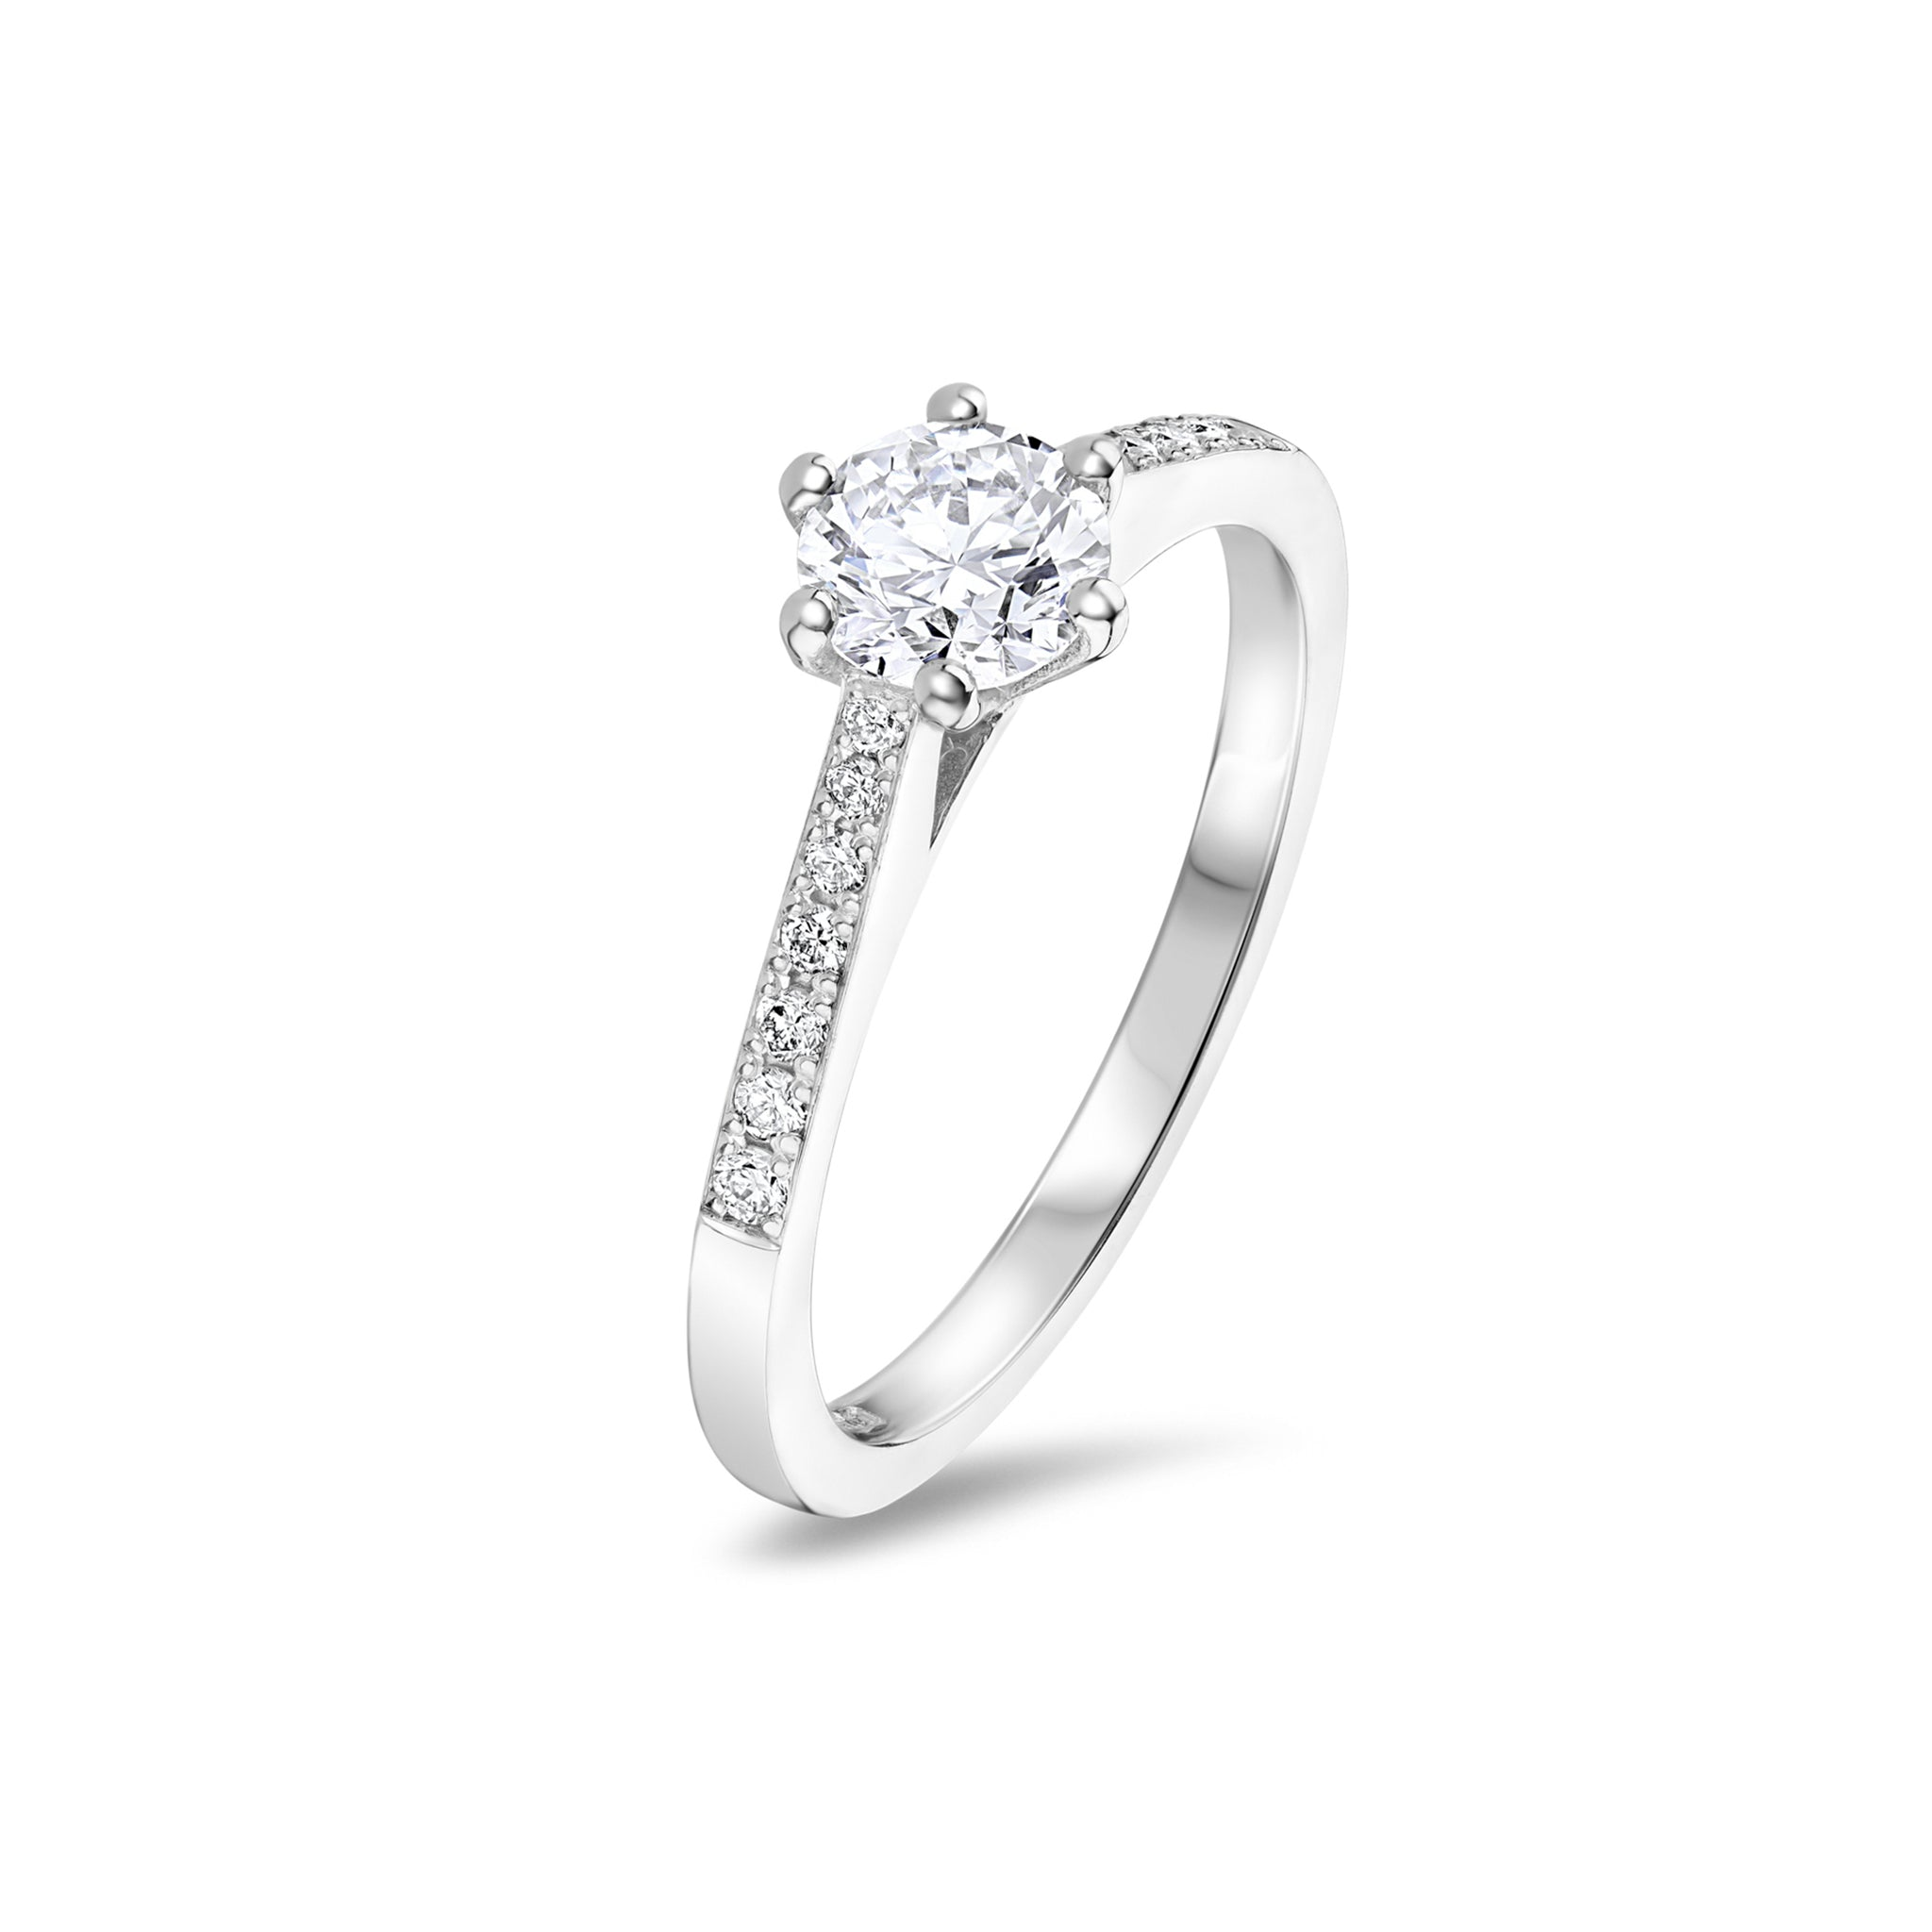 Six Claw Round Brilliant Cut Diamond Engagement Ring